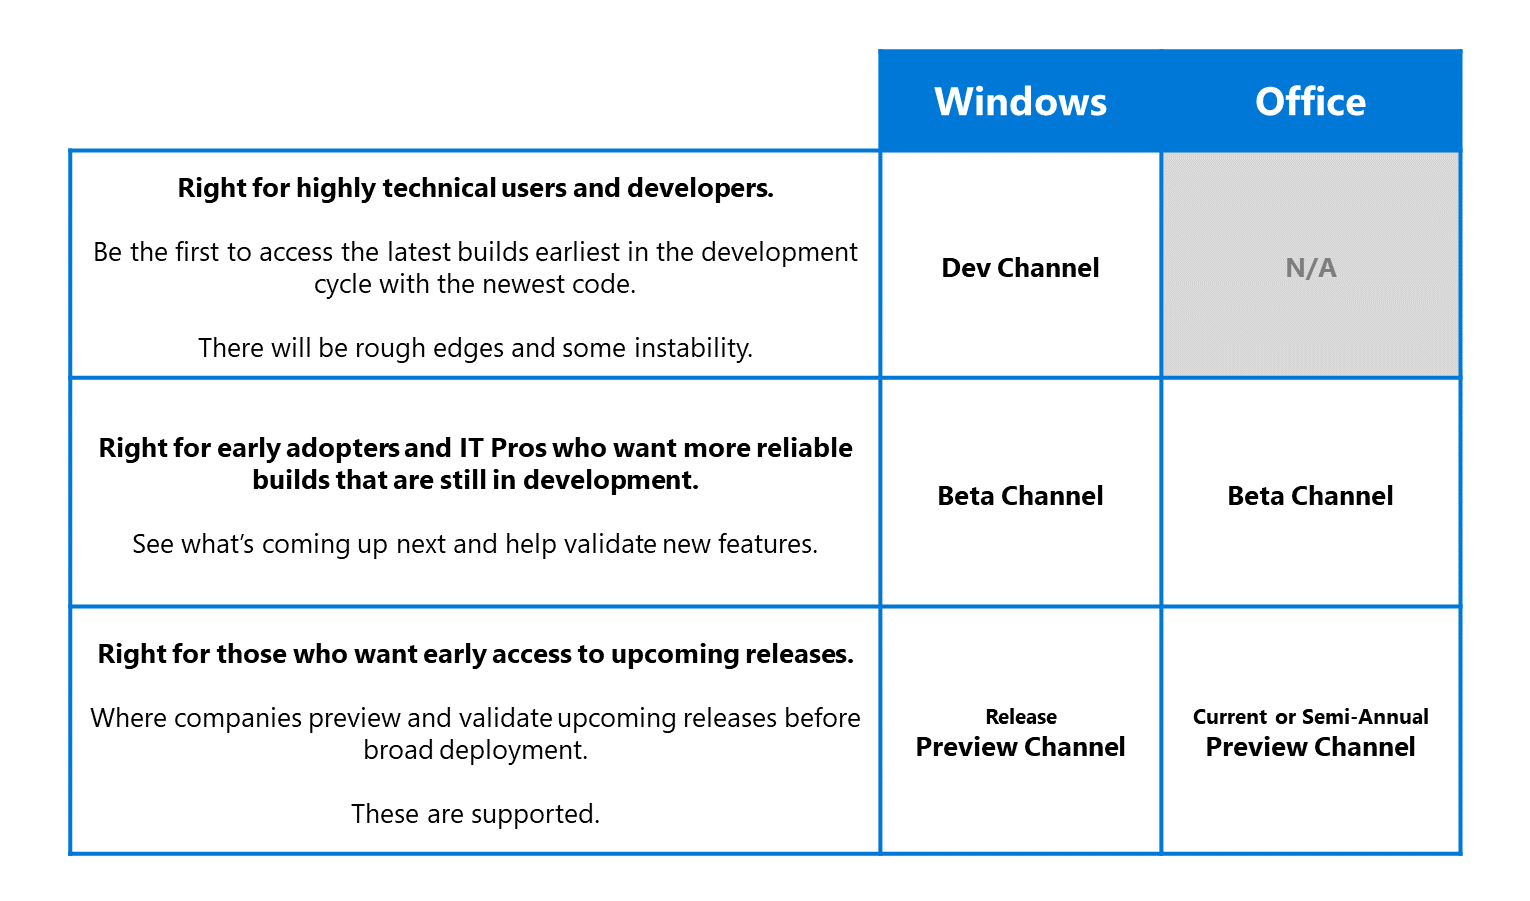 New Windows Insider Channels to replace existing Rings, with bigger focus on quality OnMSFT.com June 15, 2020